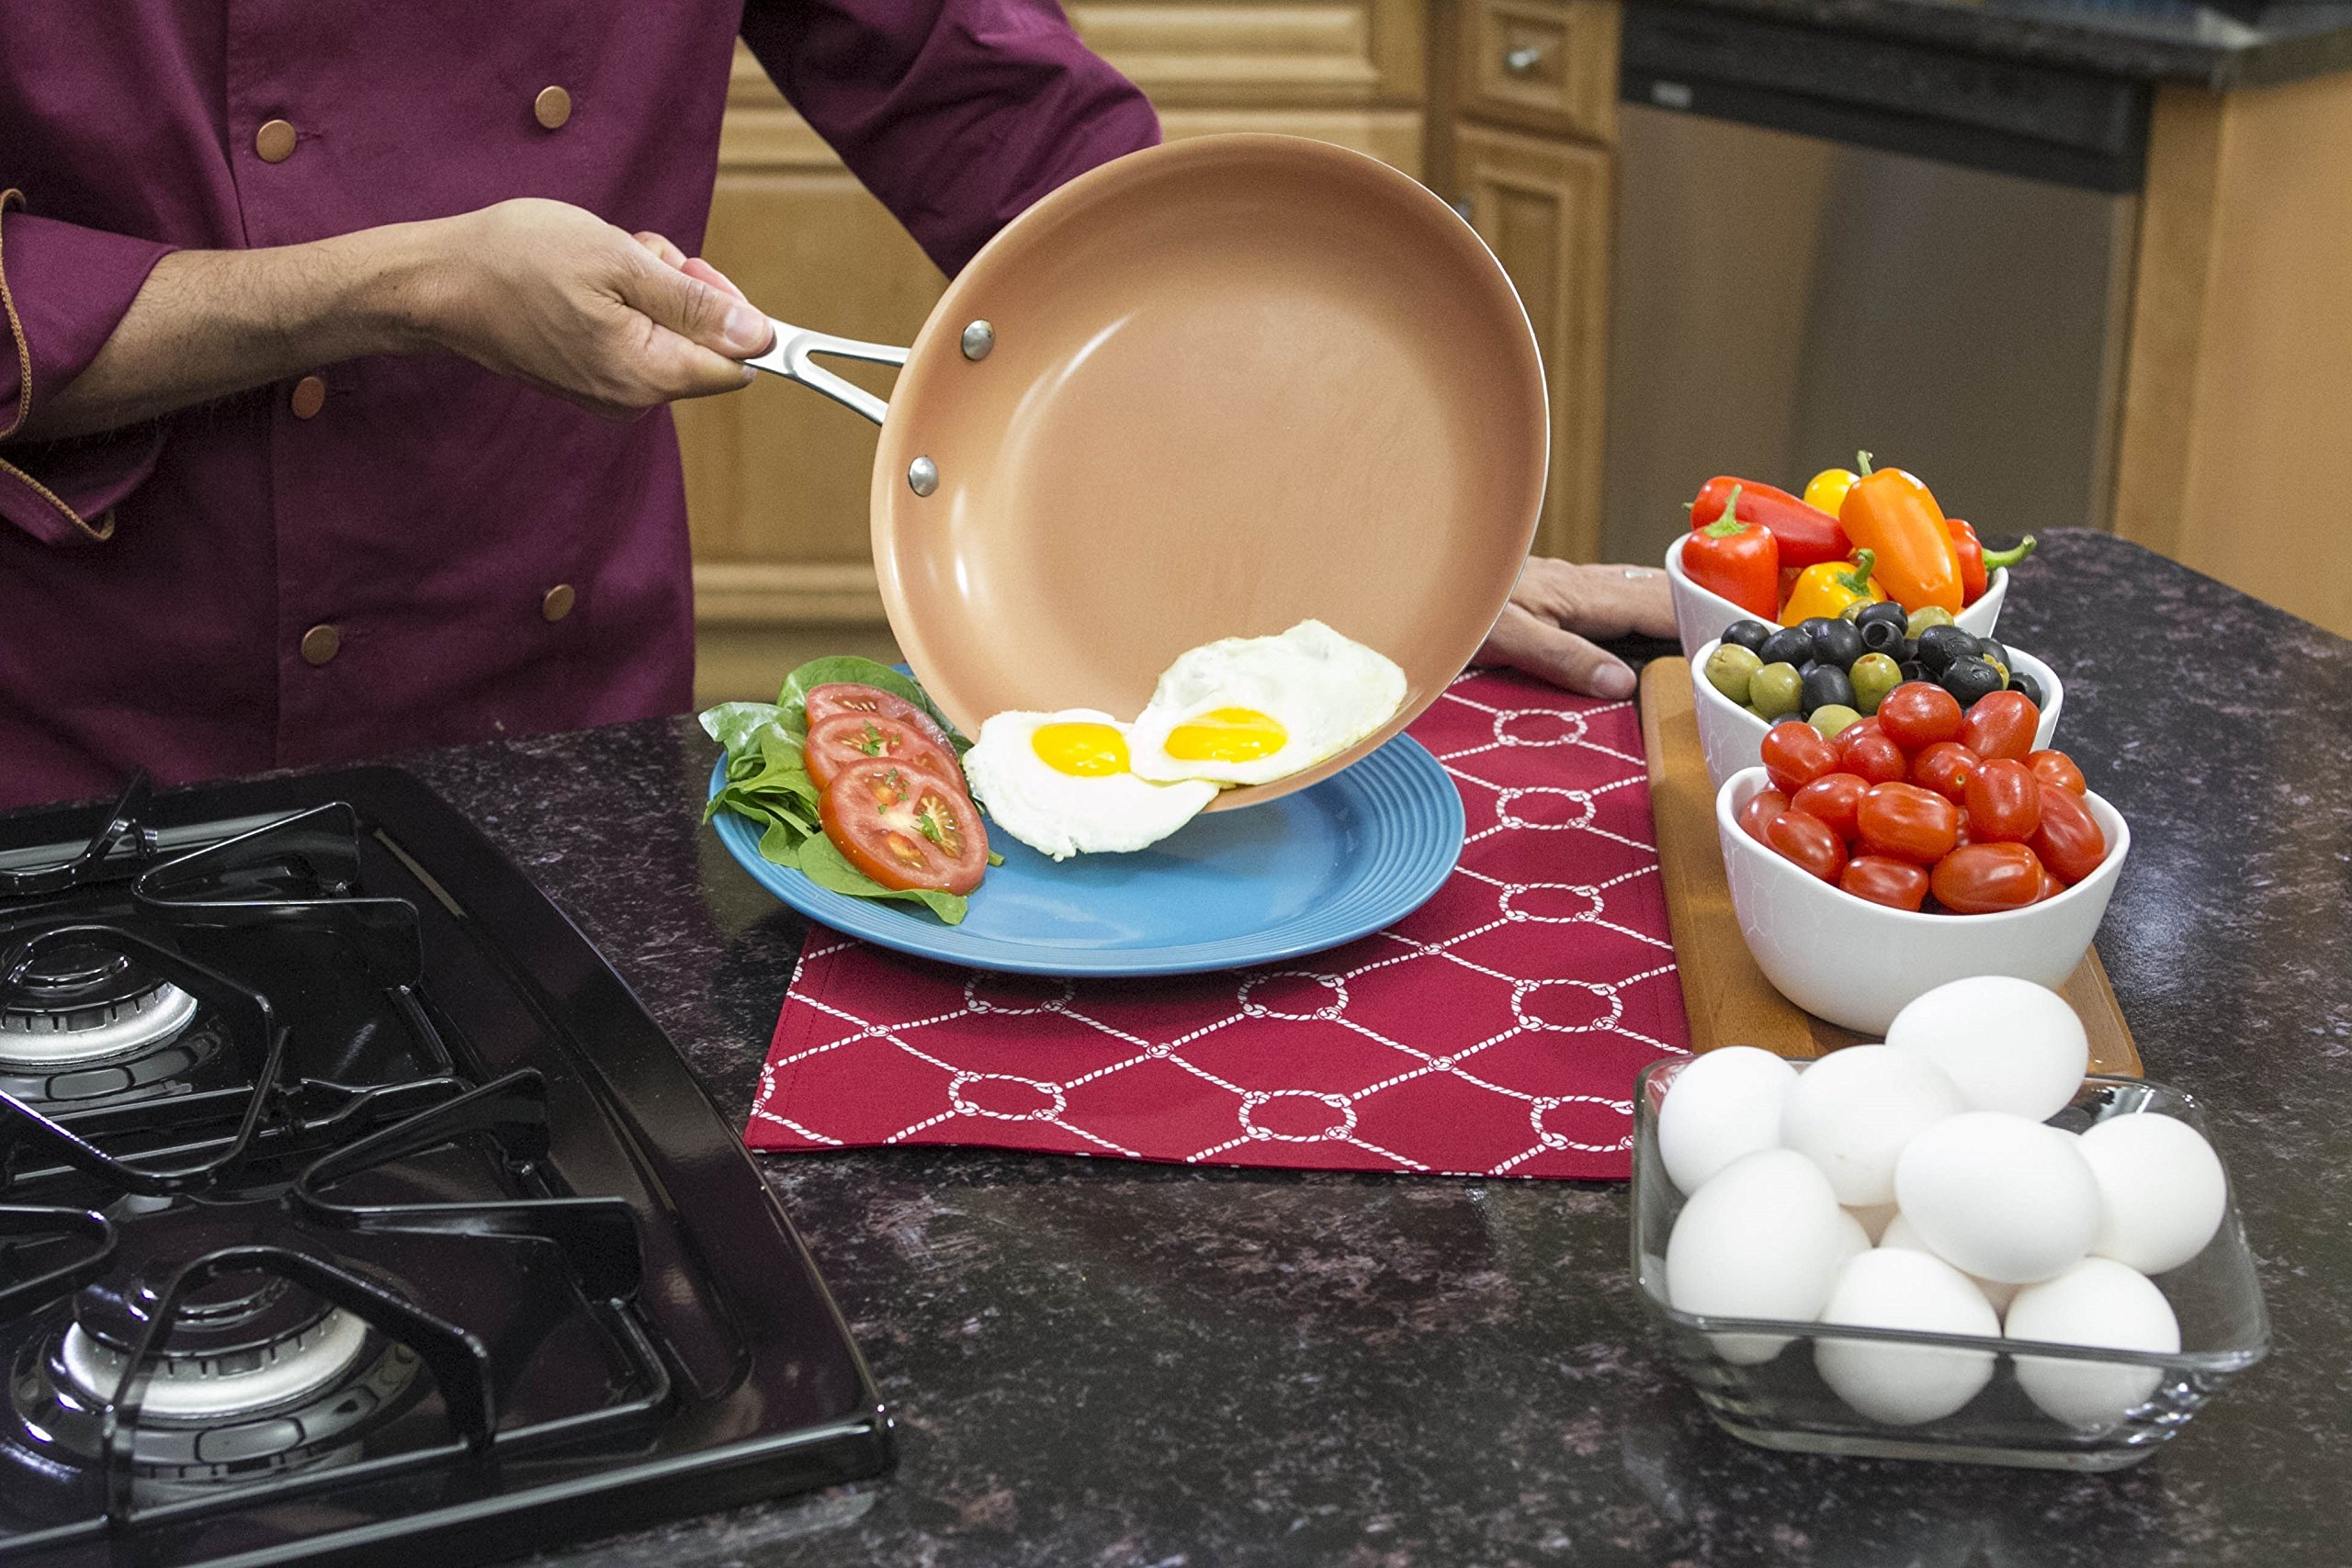 GOTHAM STEEL 9.5 inches Non-stick Titanium Frying Pan by Daniel Green by GOTHAM STEEL (Image #4)